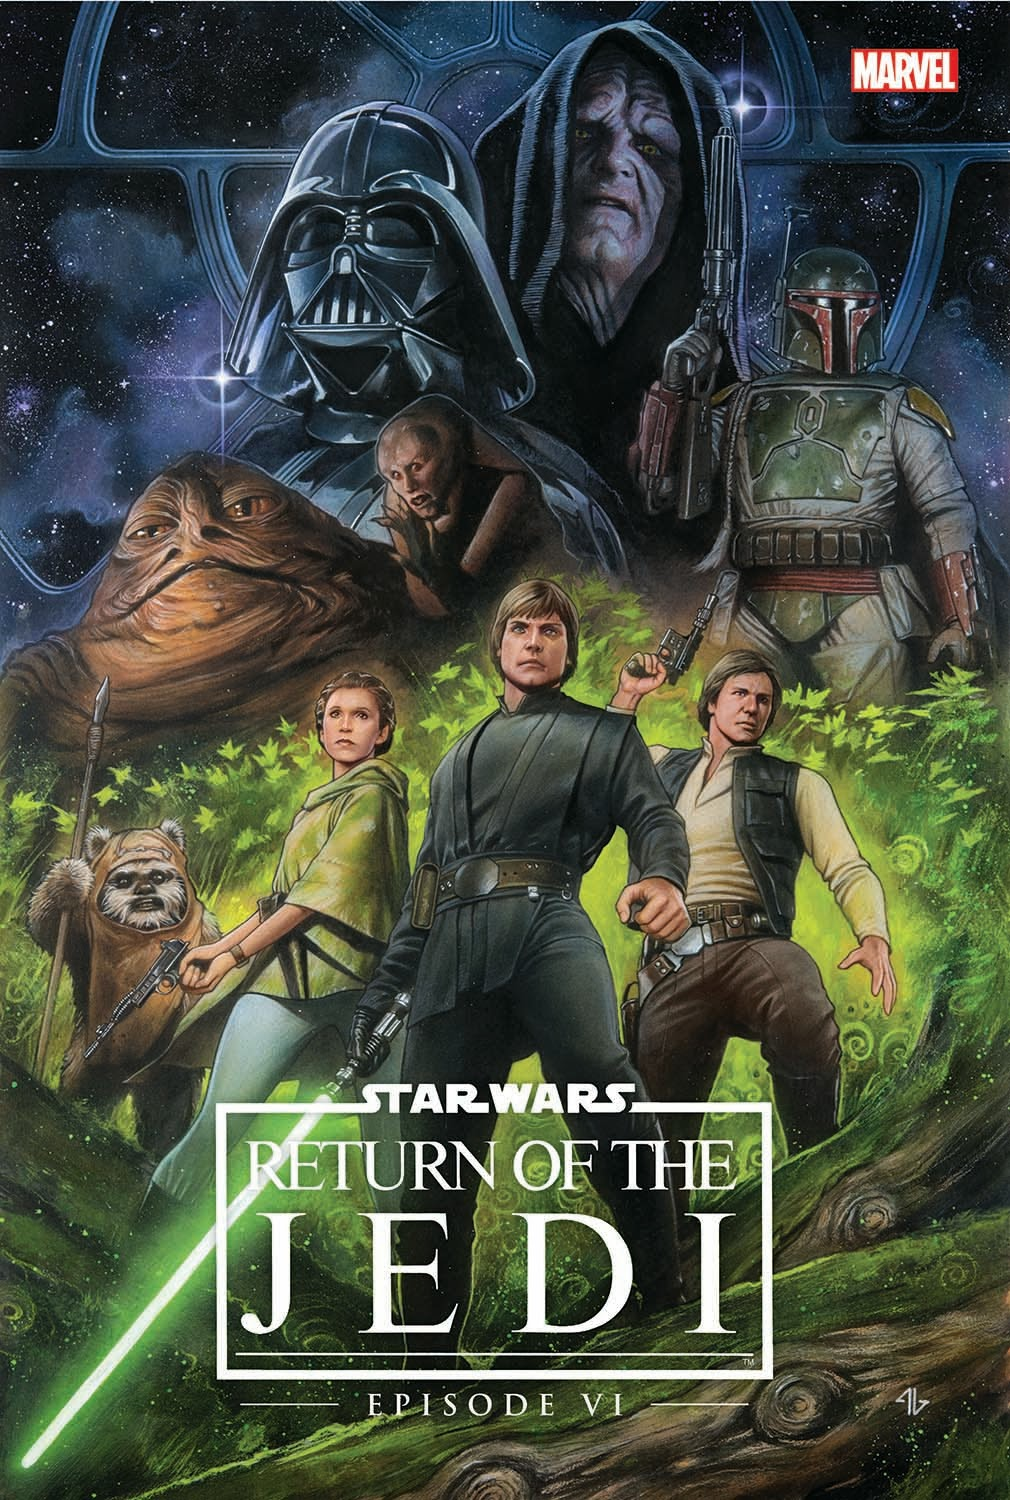 Star Wars: Episode VI - Return of the Jedi OGN